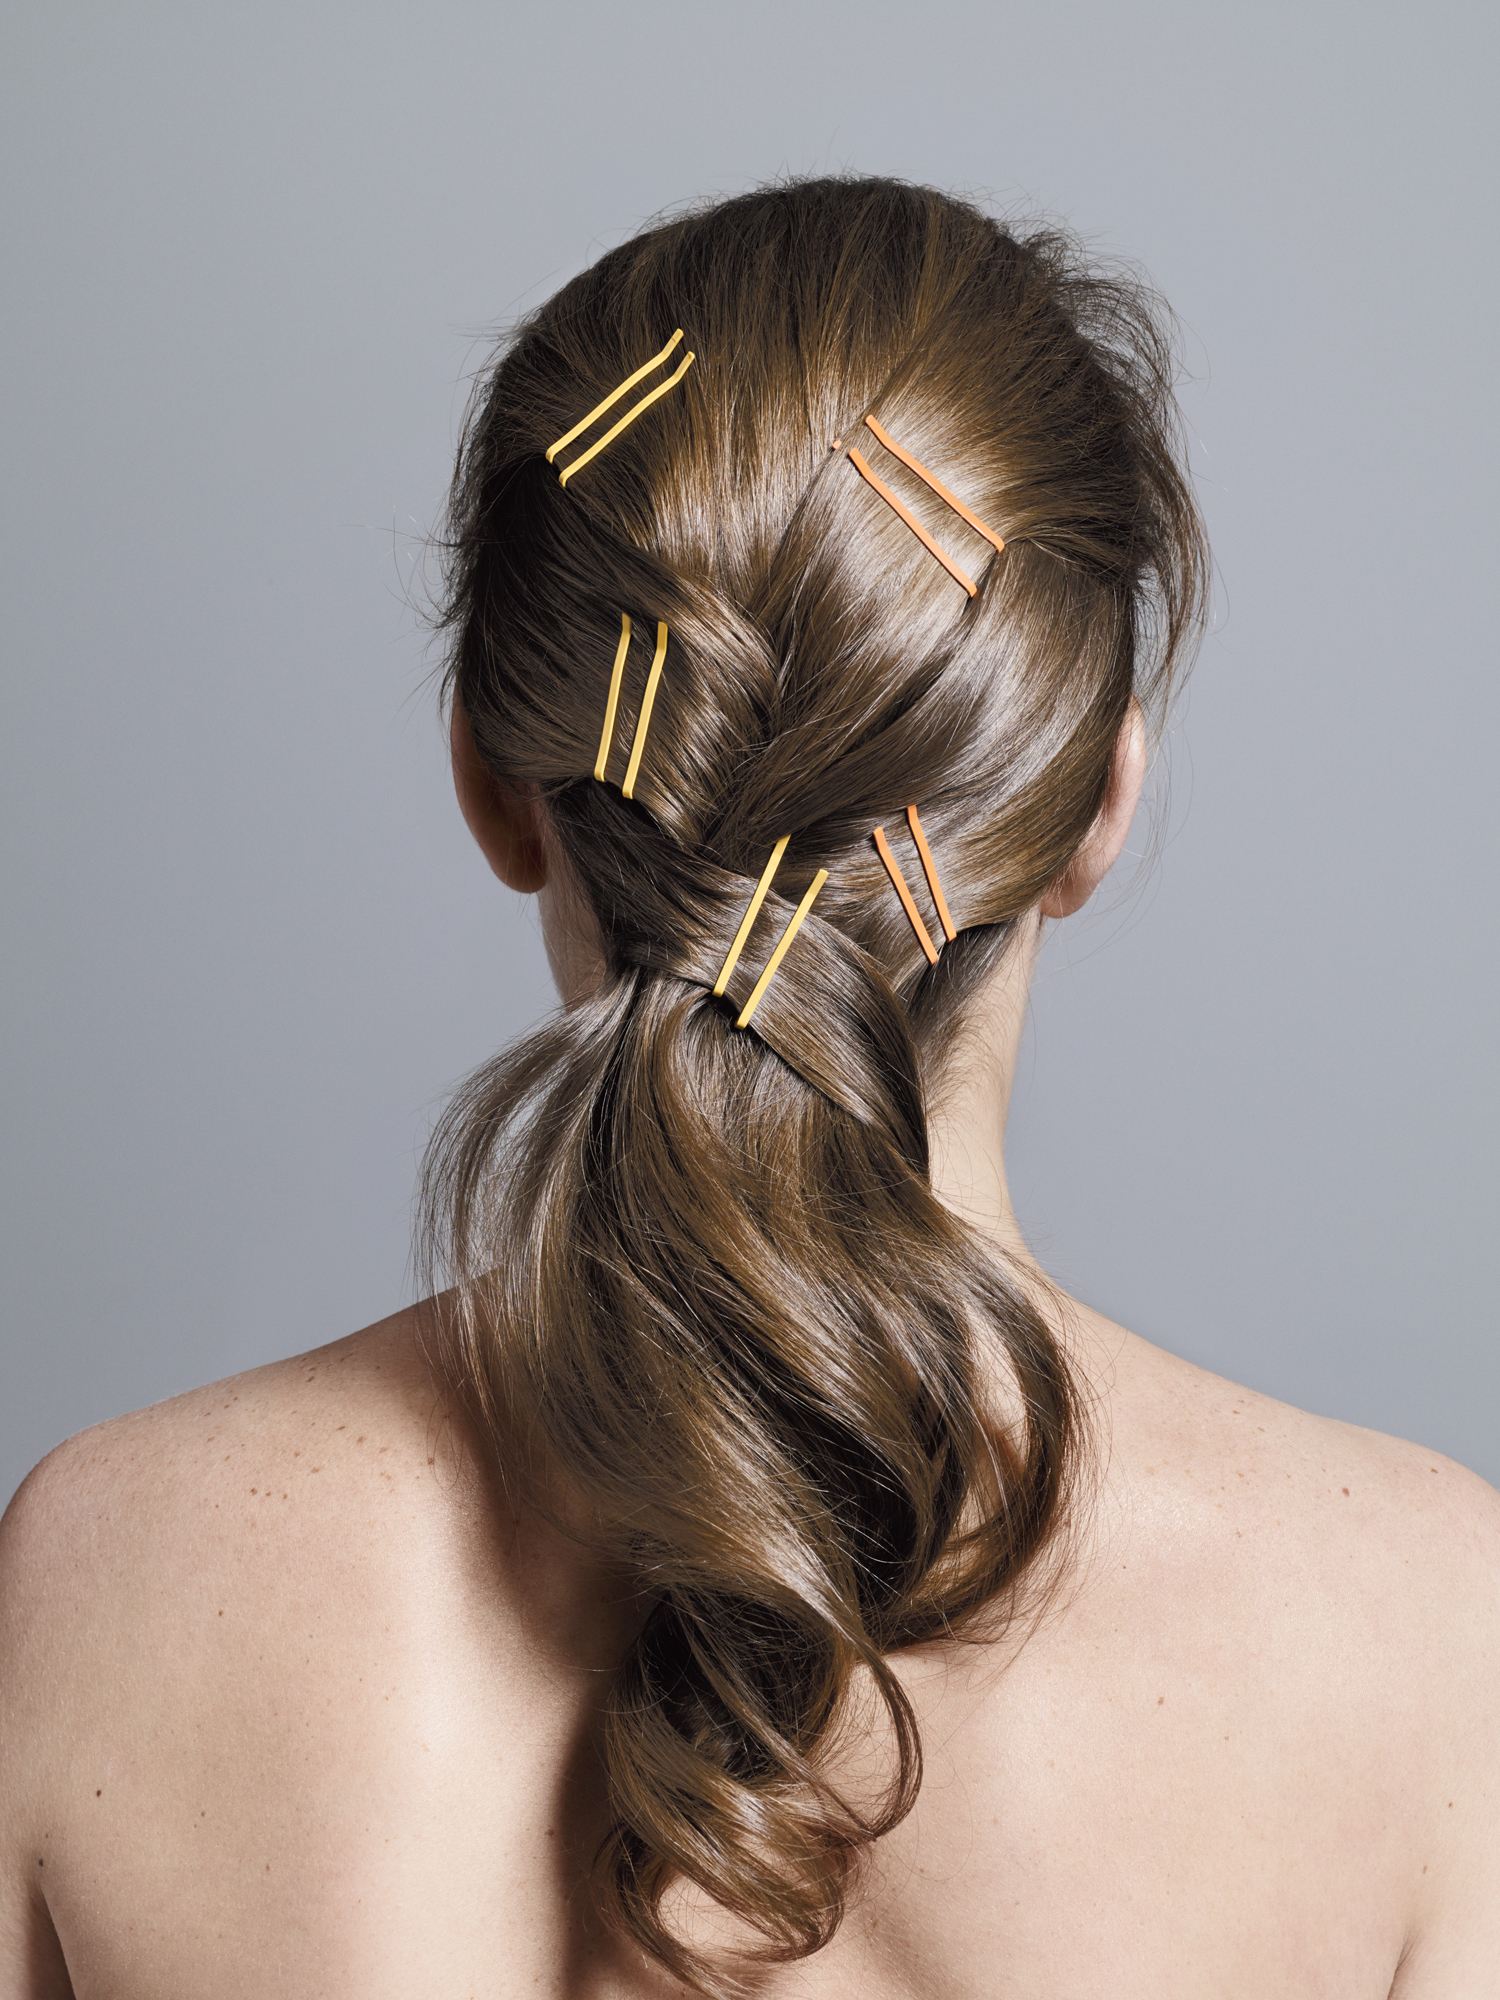 Model with loose braid and bobby pins